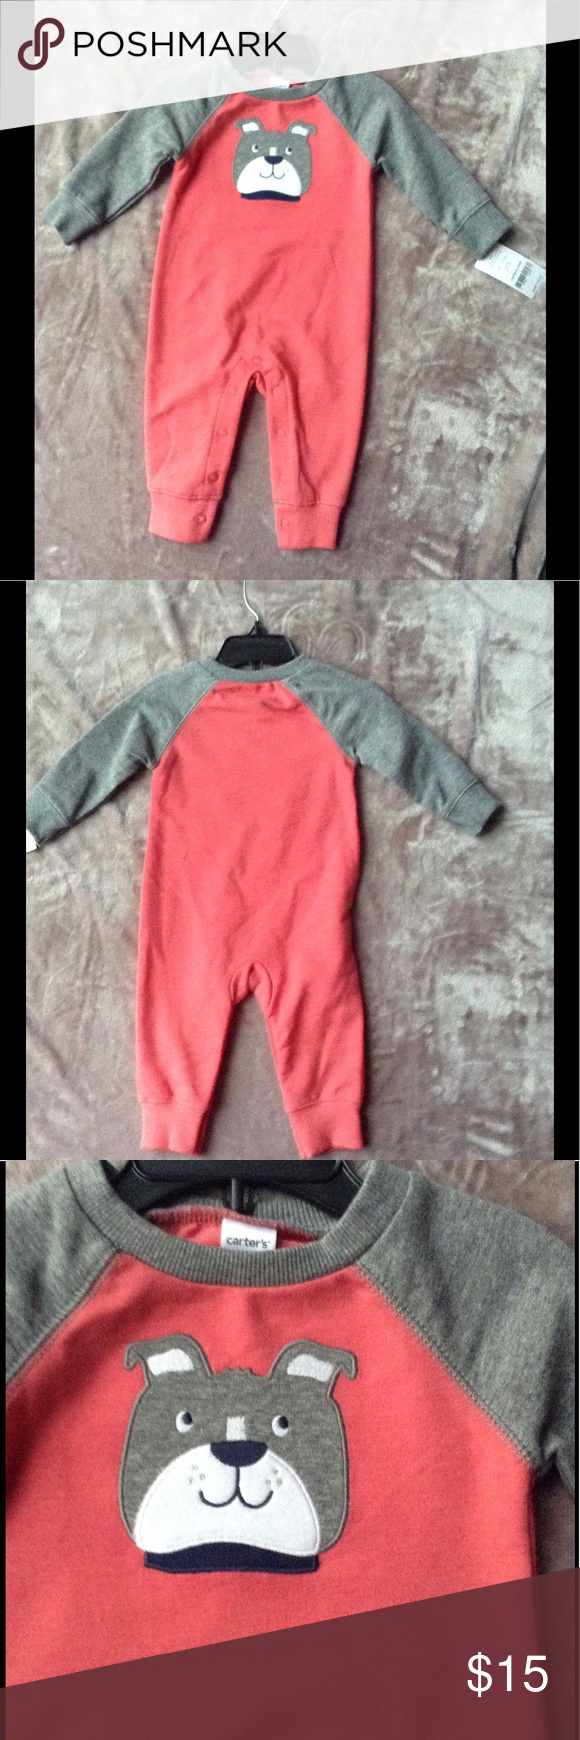 NWT Infant Onesie Outfit NWT Infant Onesie Outfit; Dog on Front; Two-Tone Colors; Snap Crotch; 60% Cotton 40% Polyester Carter's One Pieces